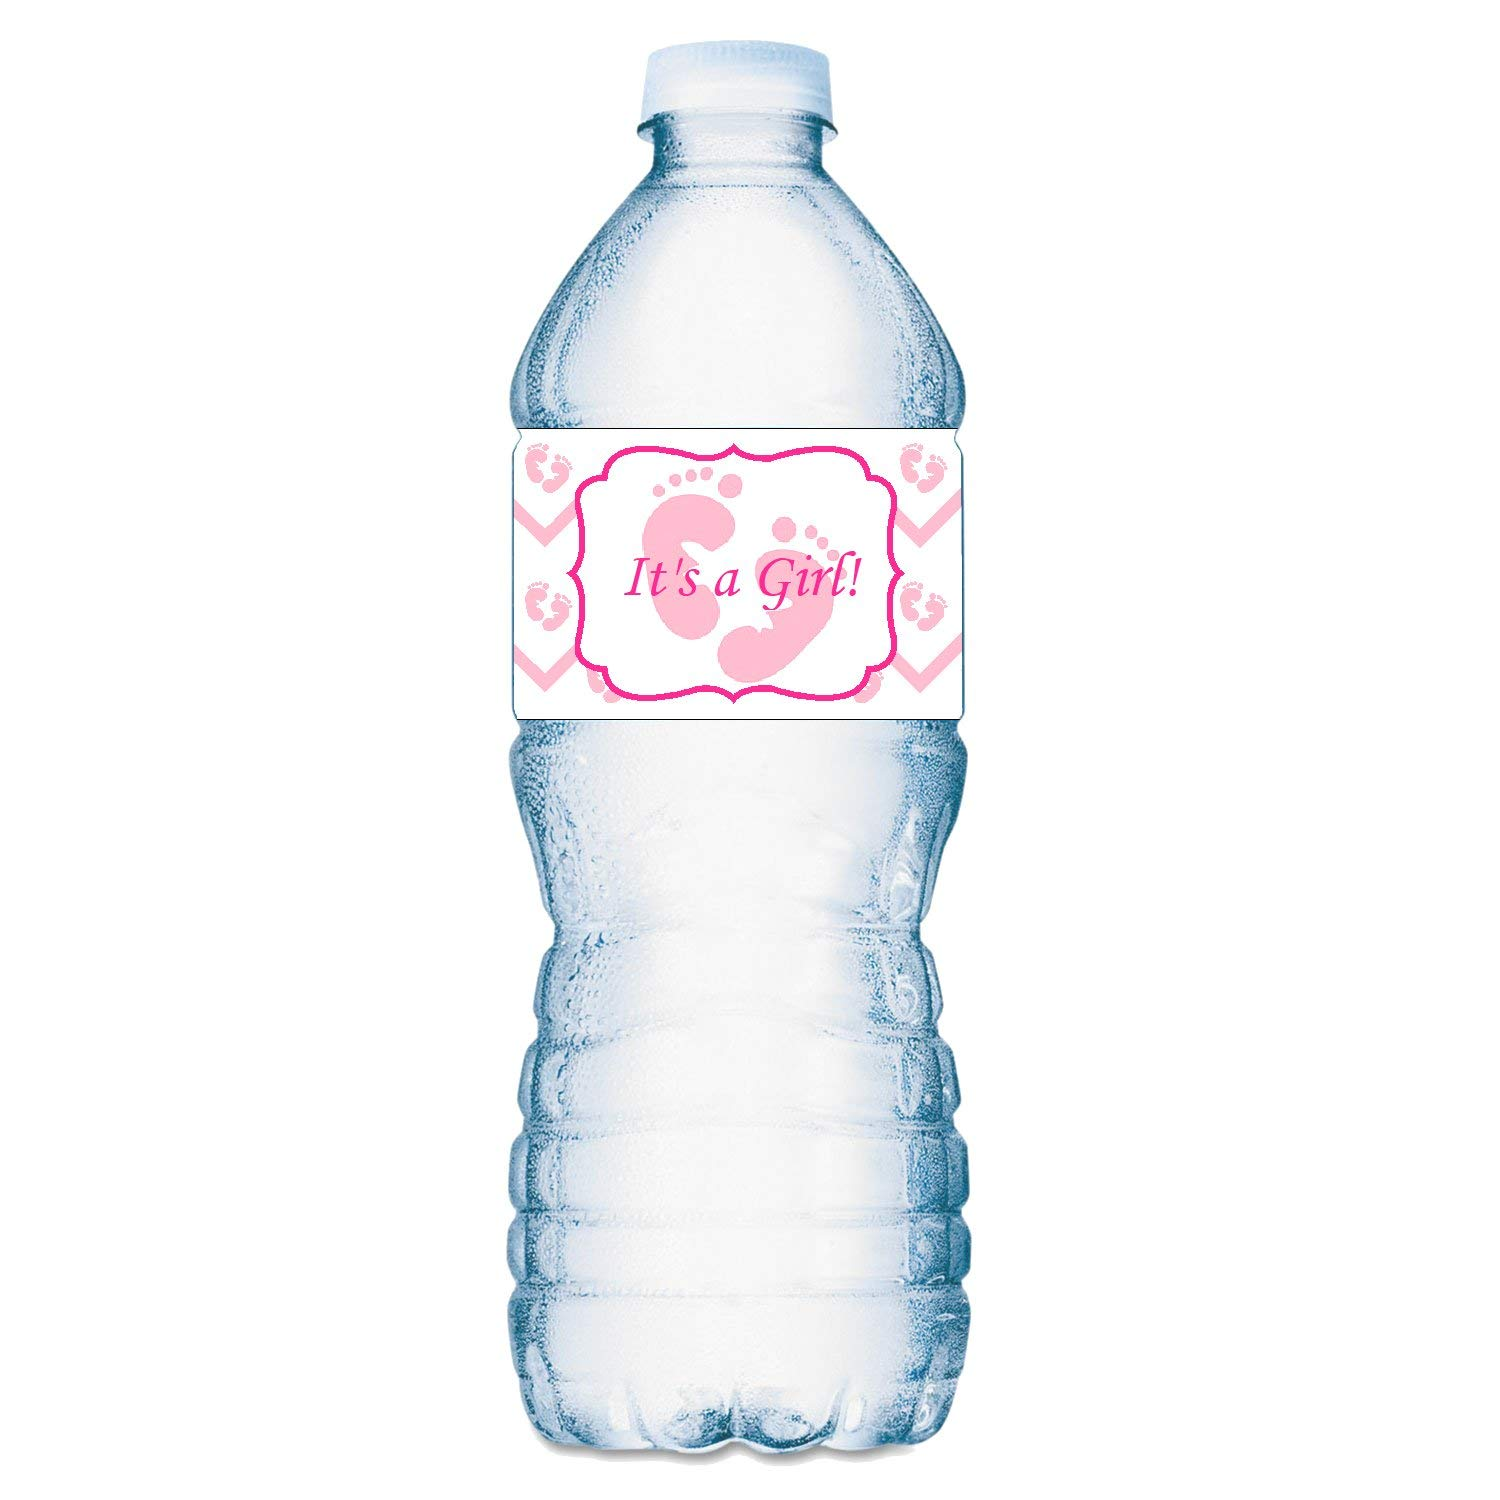 Cheap Pink Water Bottle Labels Find Pink Water Bottle Labels Deals